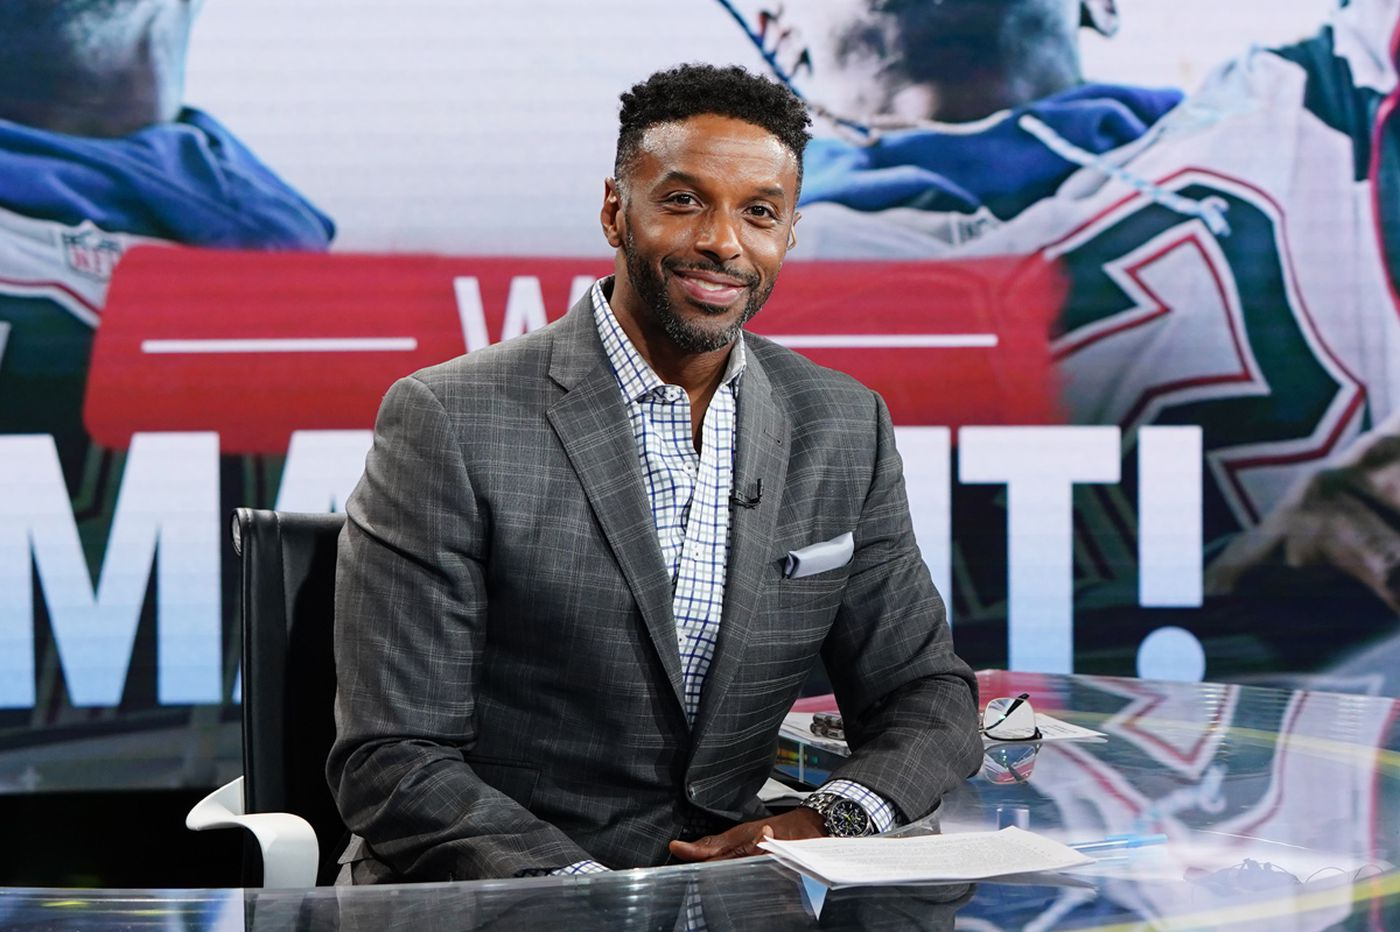 Philly Native Ryan Smith In The Spotlight At Espn As Bob Ley Remains On Sabbatical